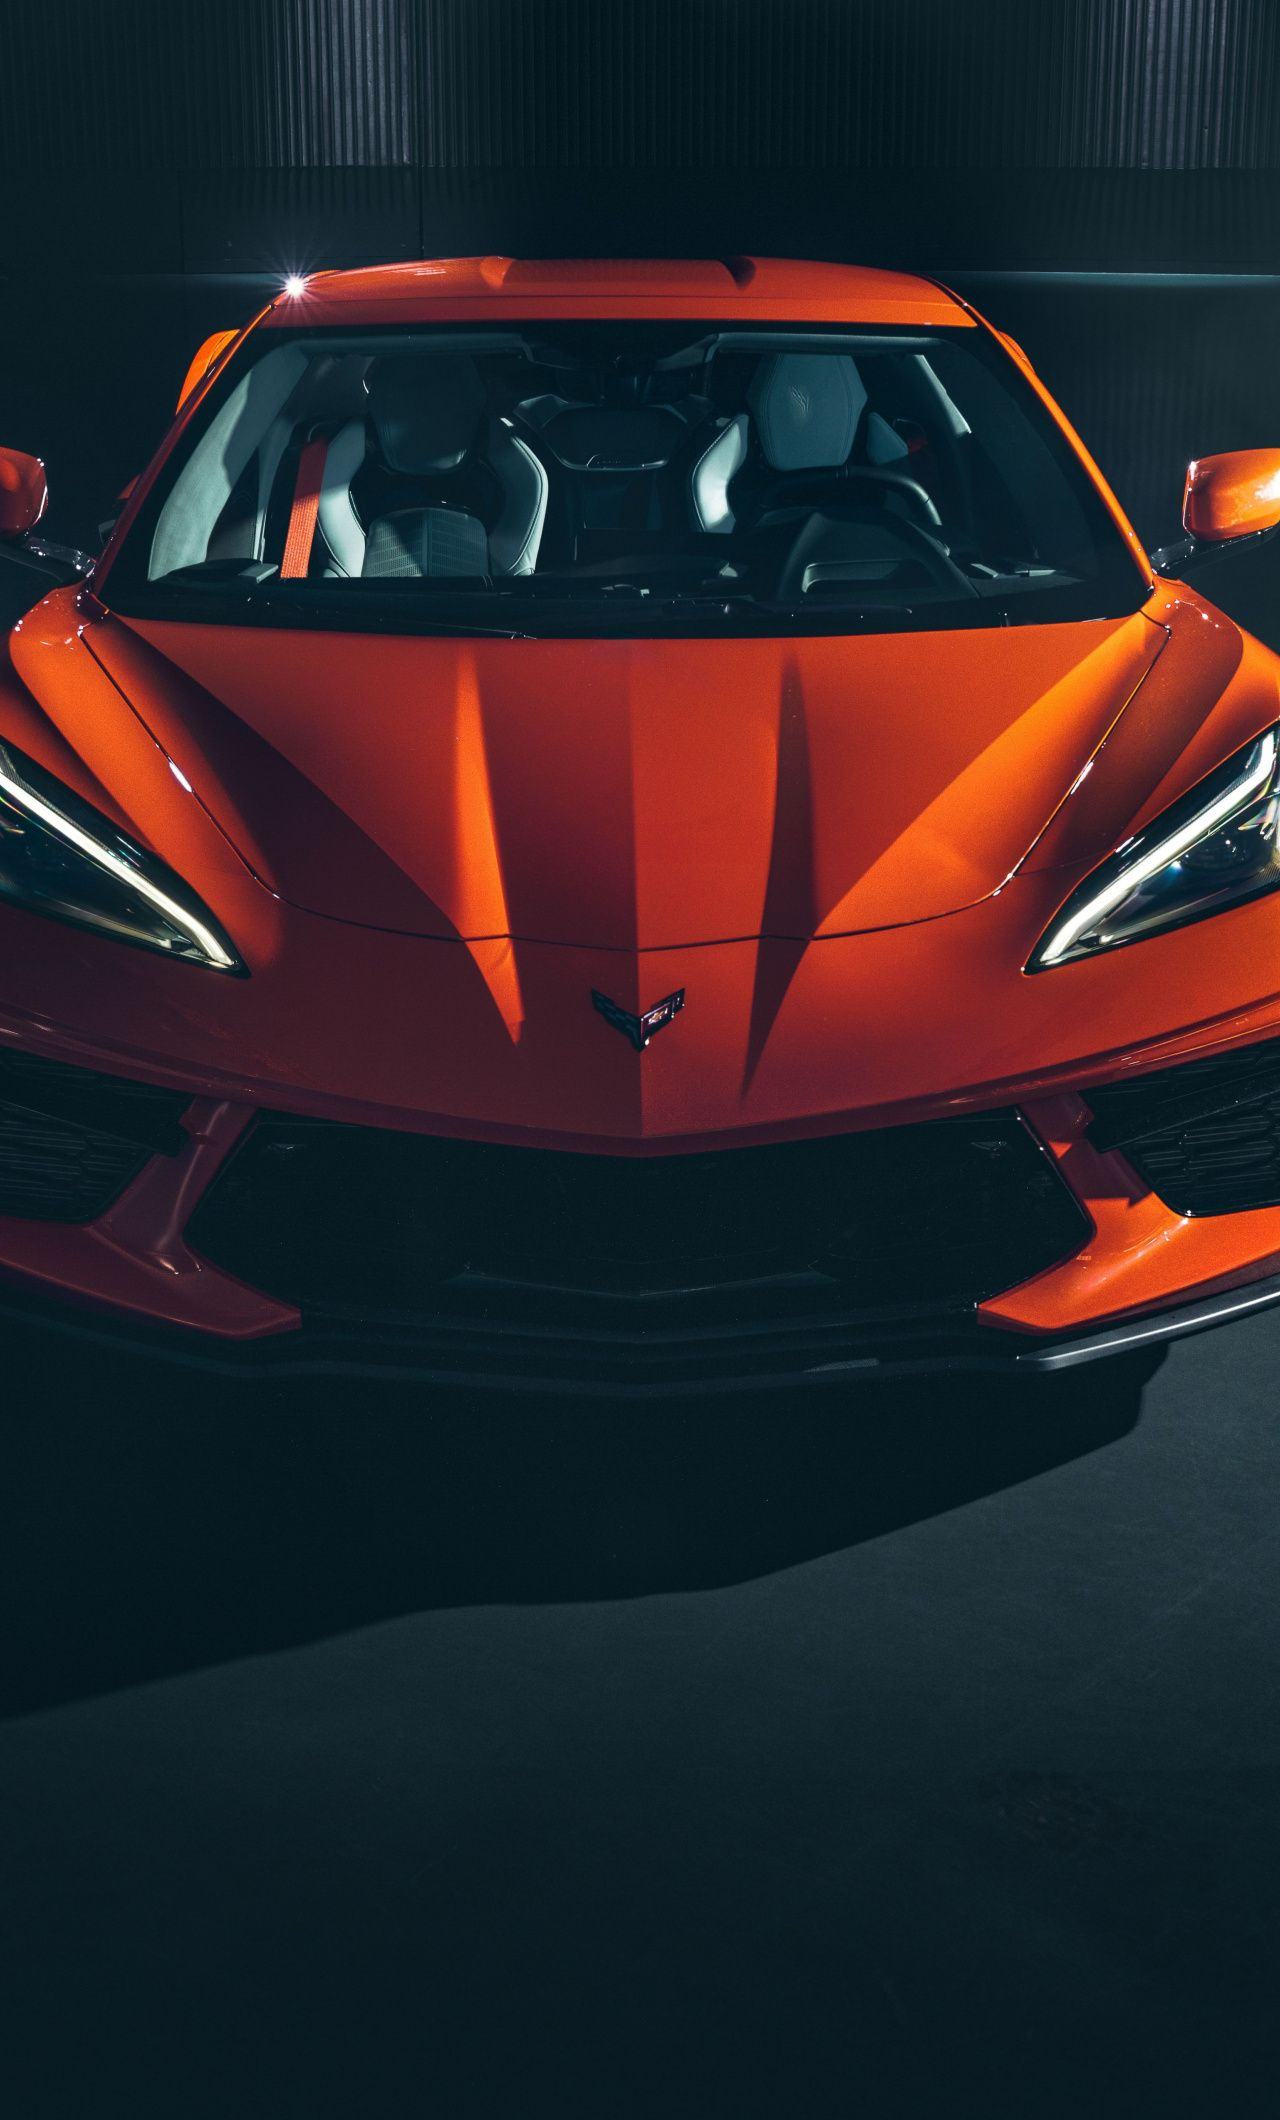 1280×2120 2020 Chevrolet Corvette Stingray C8, sports car wallpaper